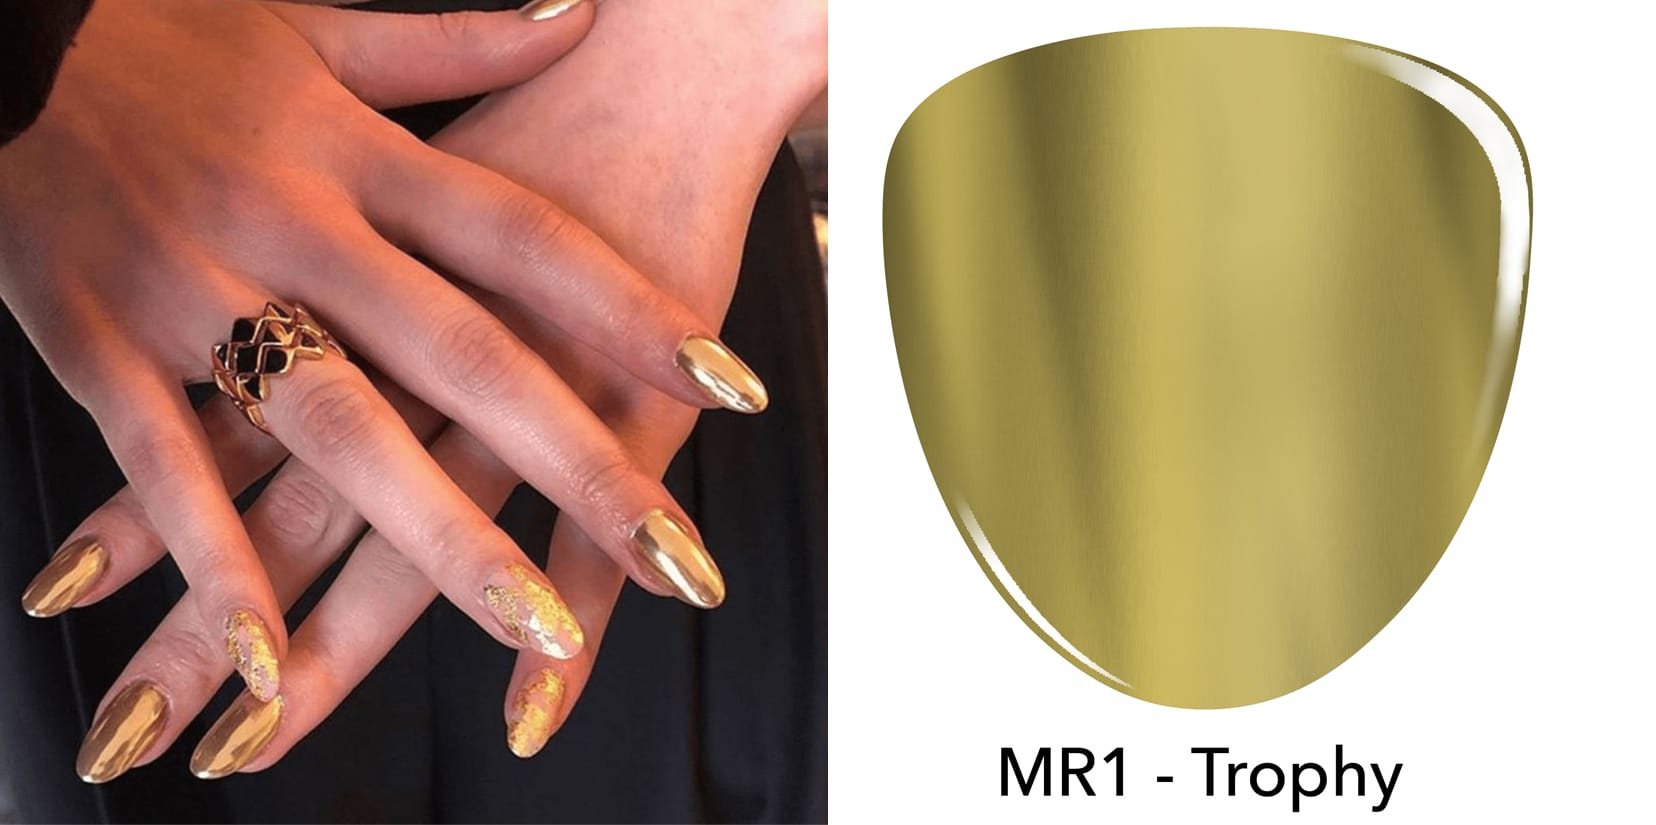 Photo of Hailee Steinfeld nails, gold chrome dip powder nails, revel nail dip powder